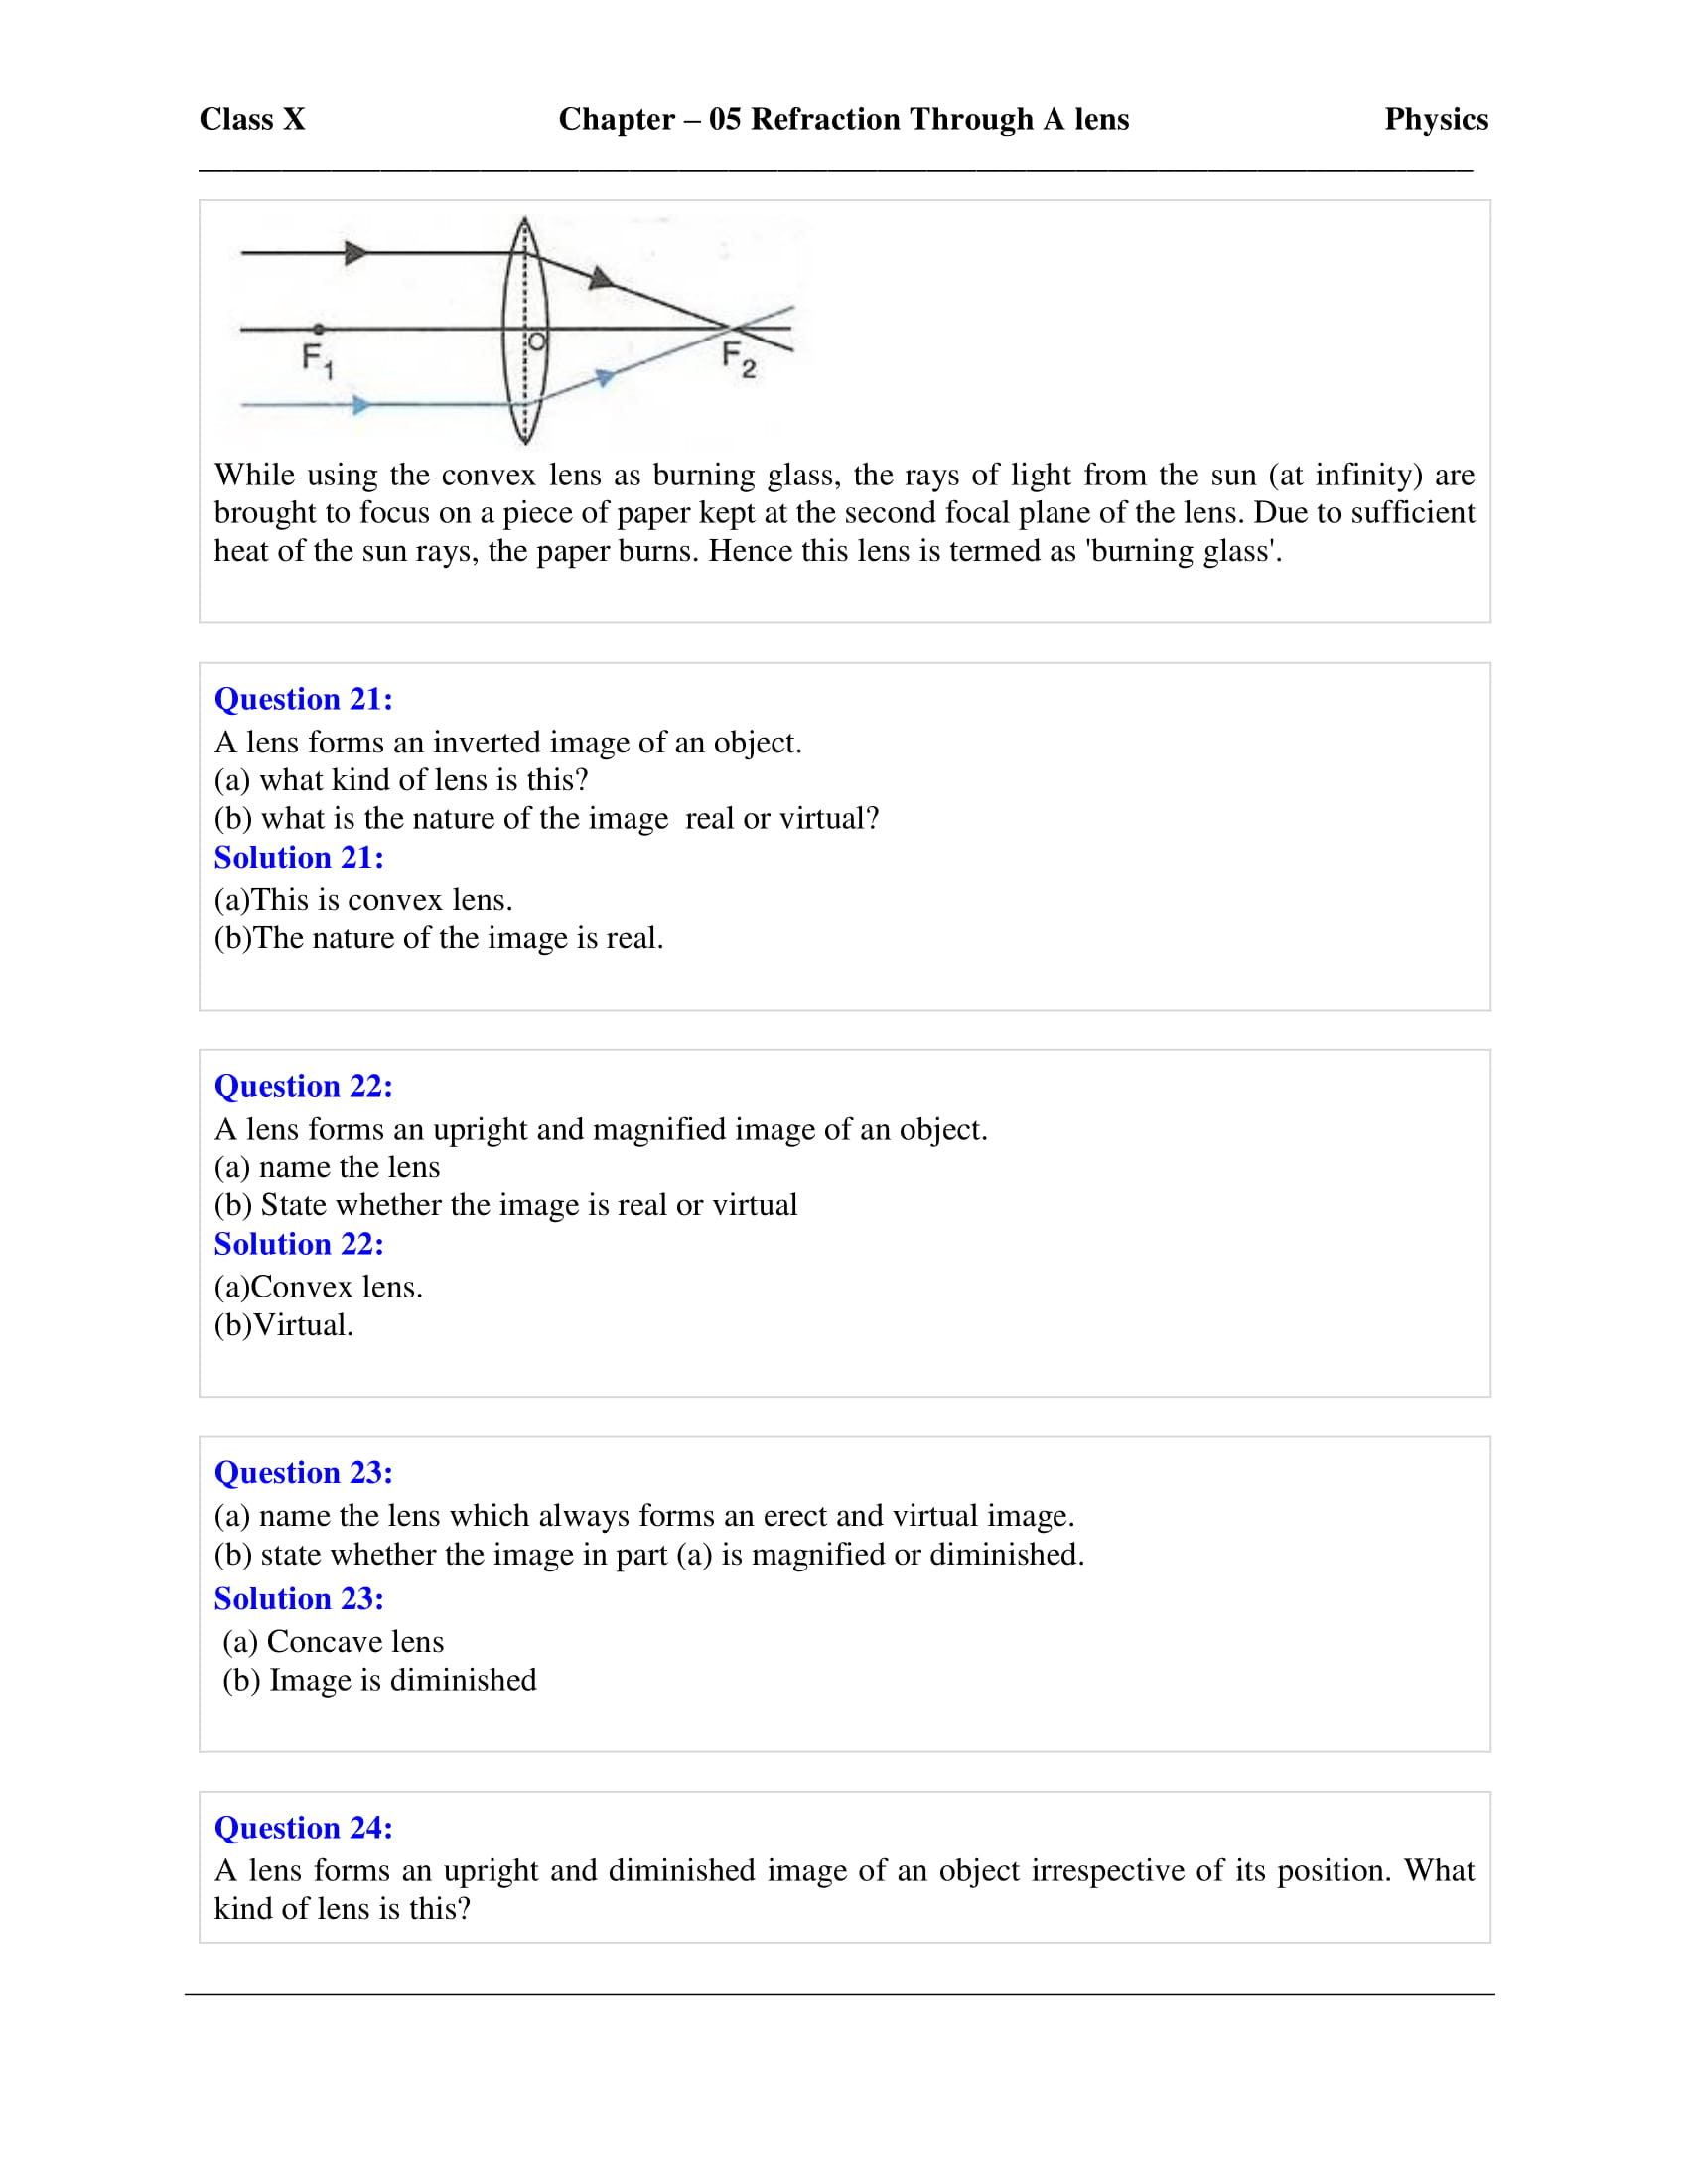 icse-selina-physics-solutions-class-10-chapter-5-refraction-through-a-lens-26